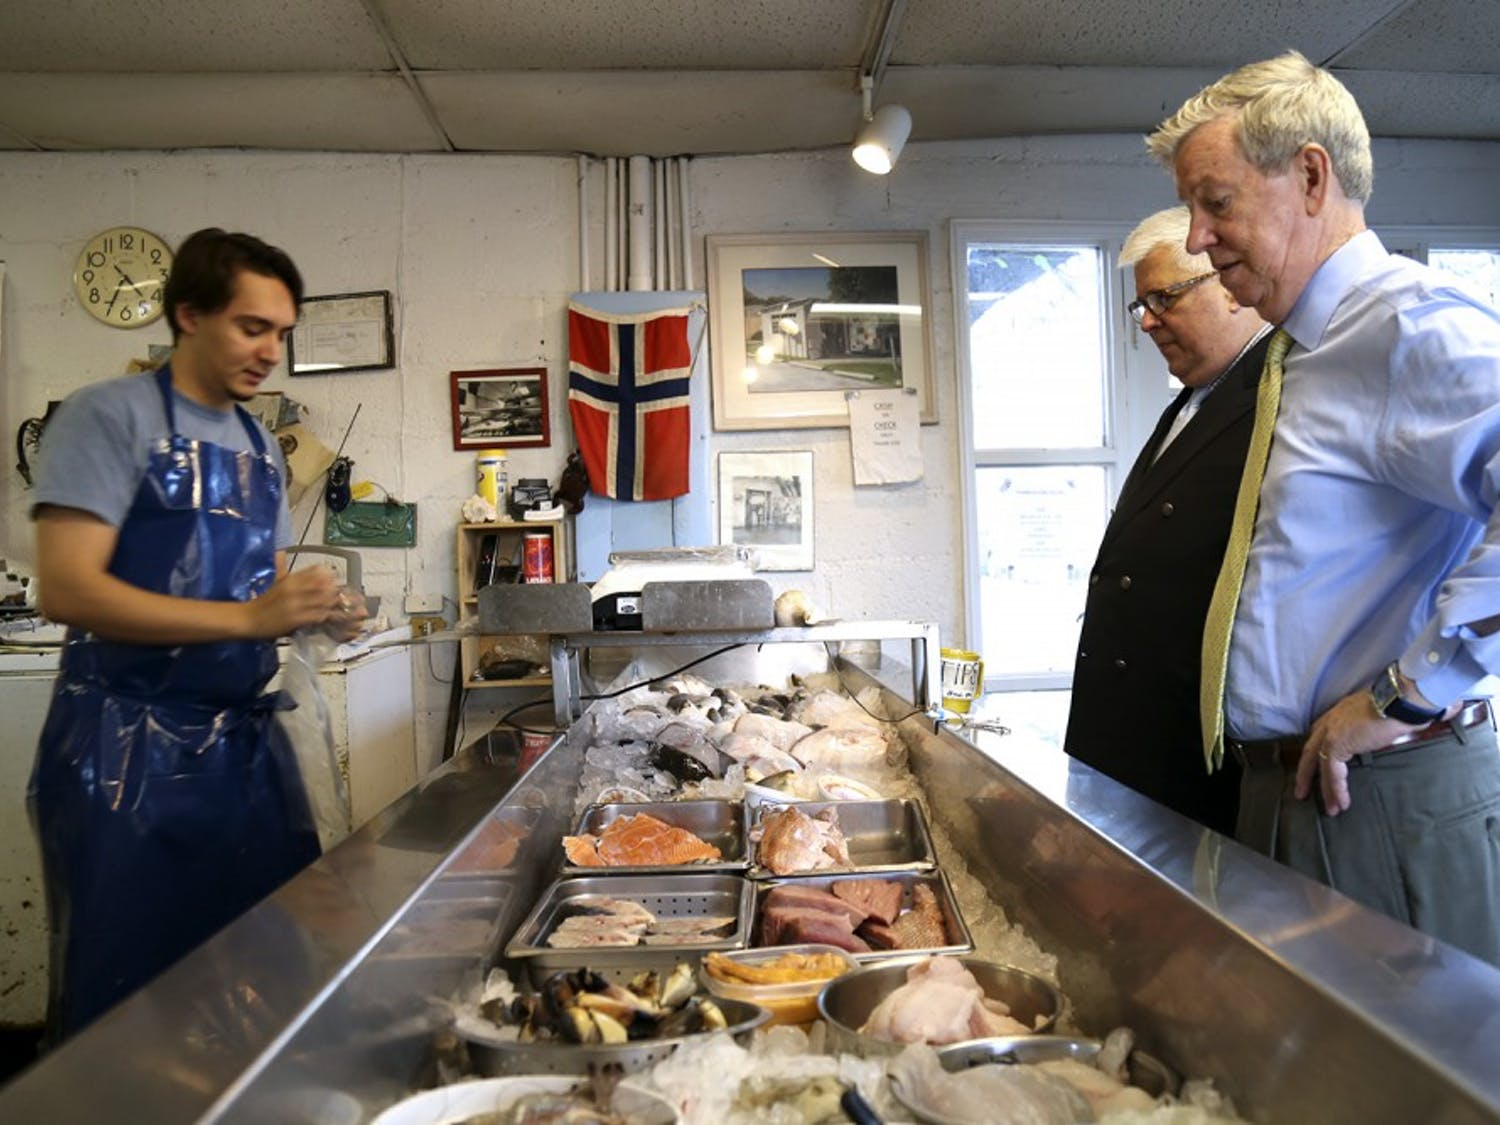 (From left) Sam Sockwell, a worker for Tom Robinson's Sea Food, works behind the counter for Mark Pandick and Larry Logan.